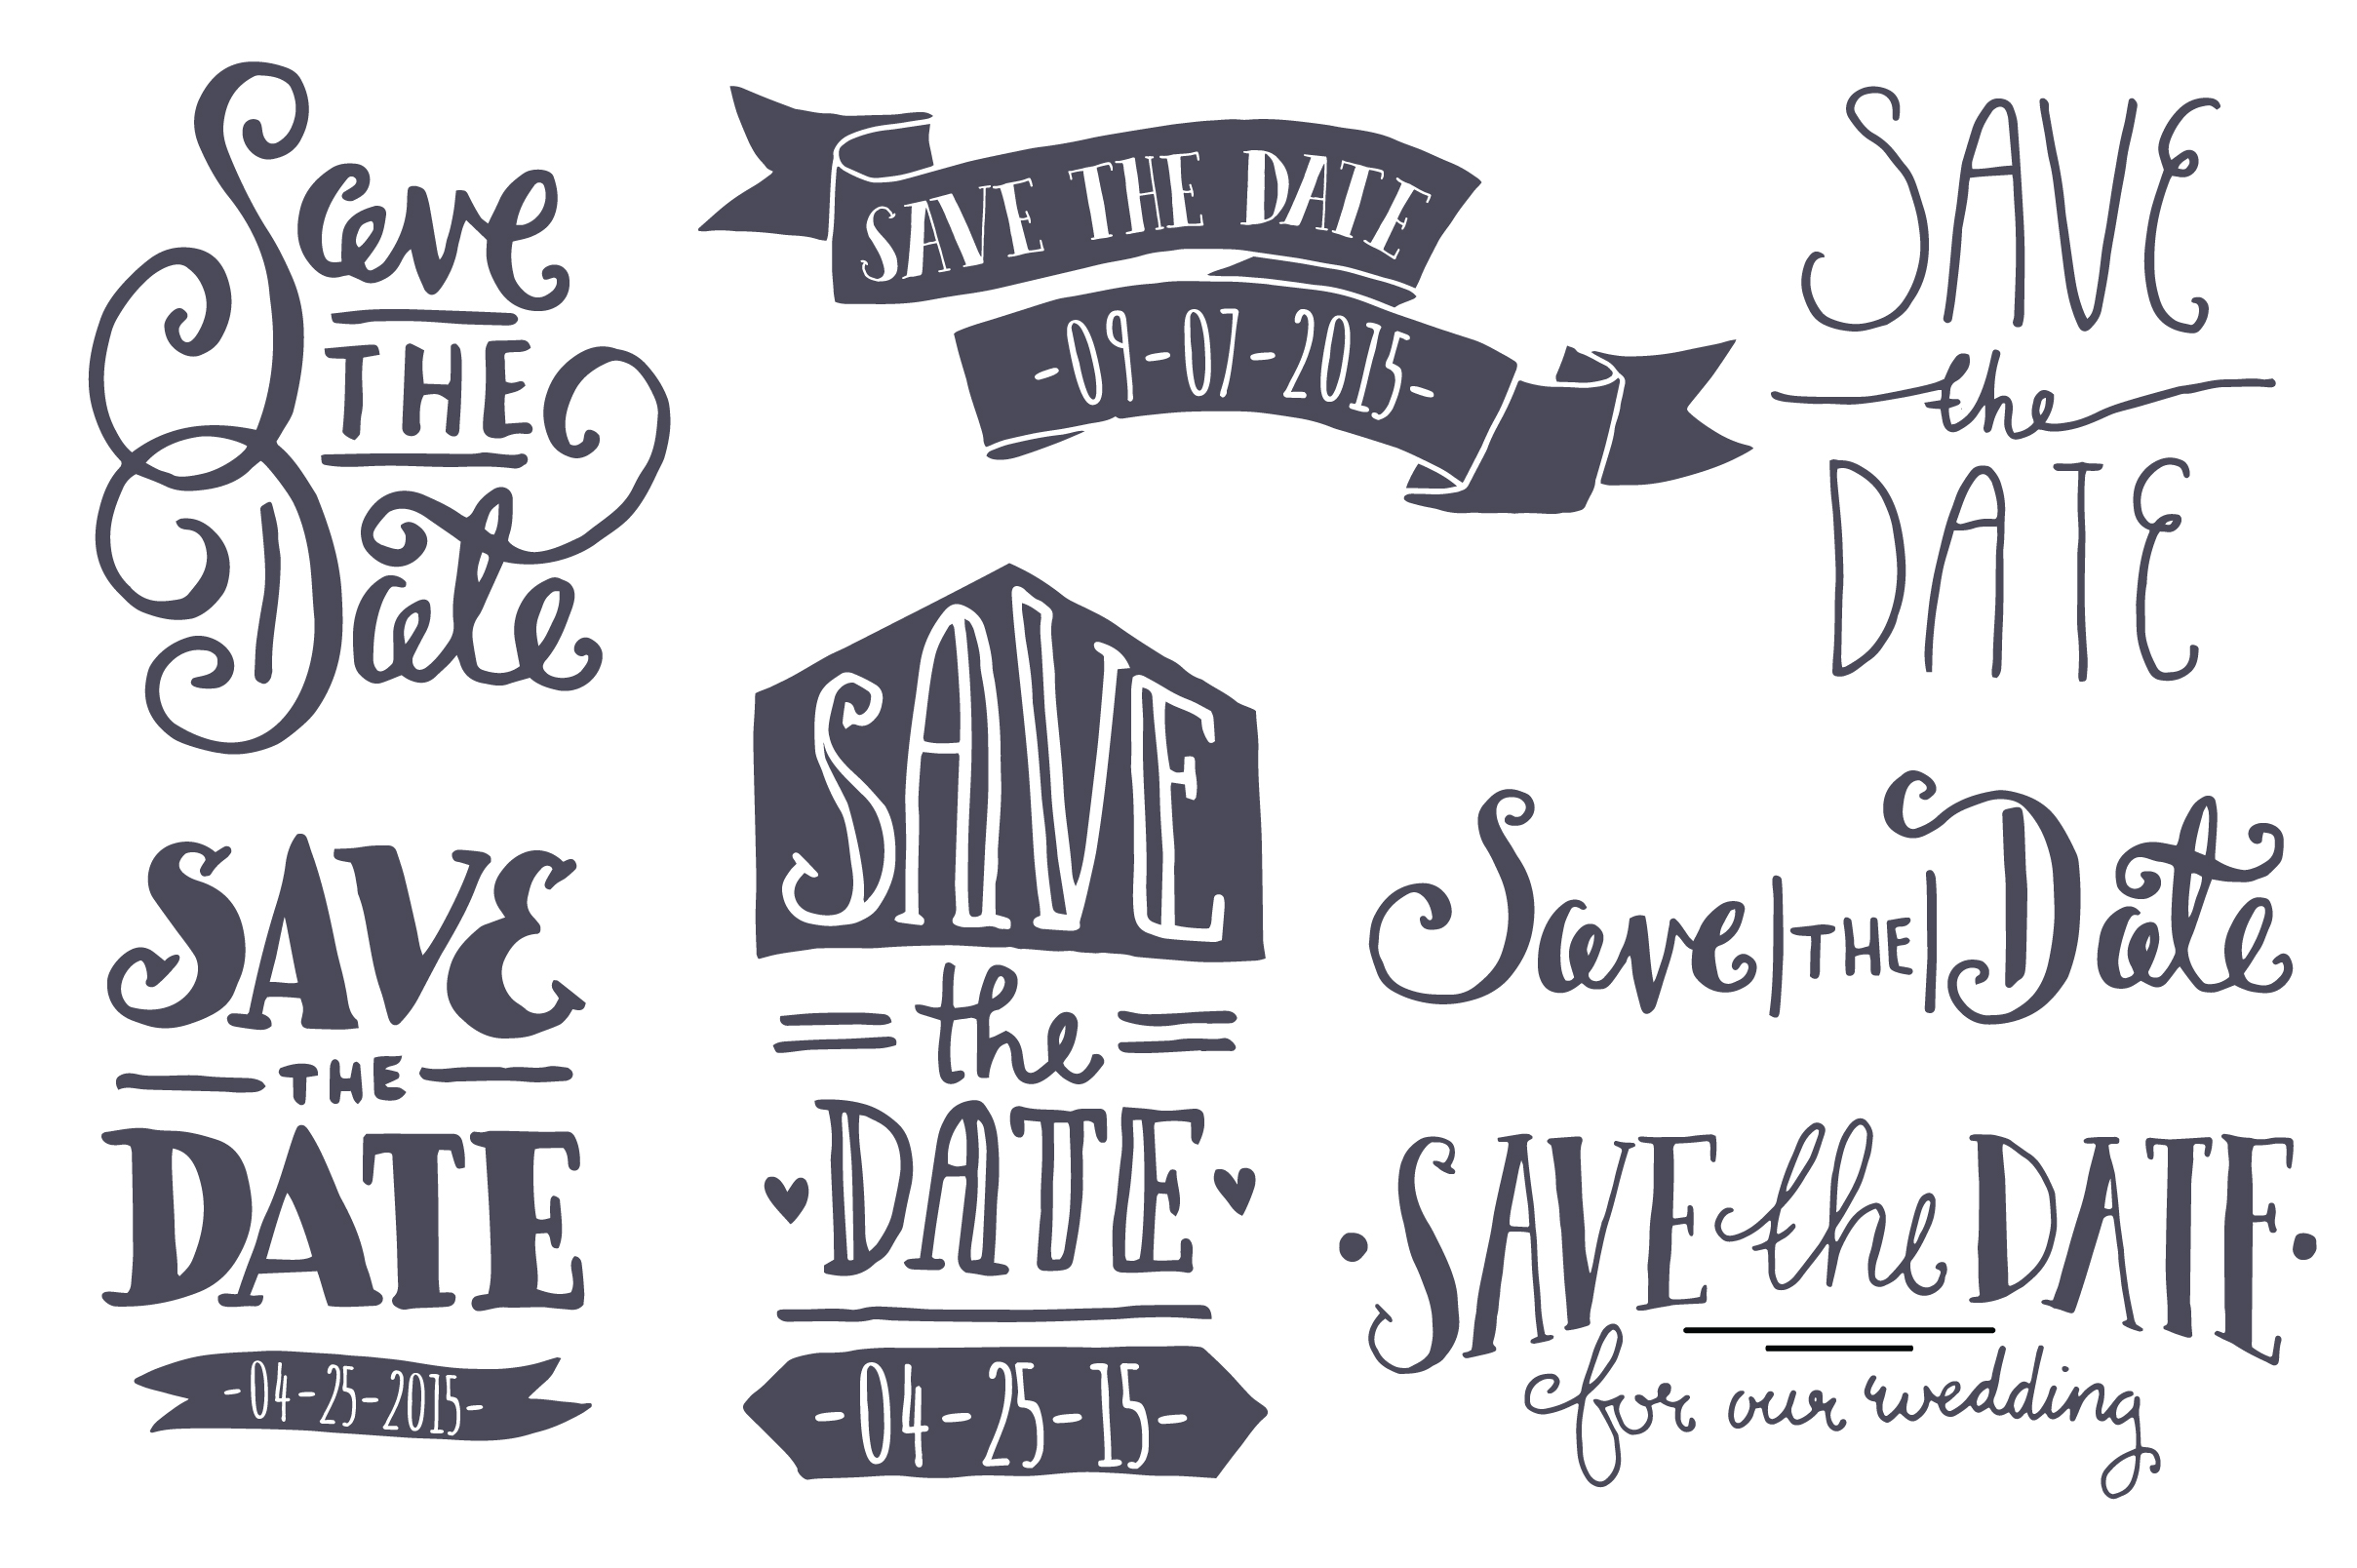 save the date clipart black and white 9